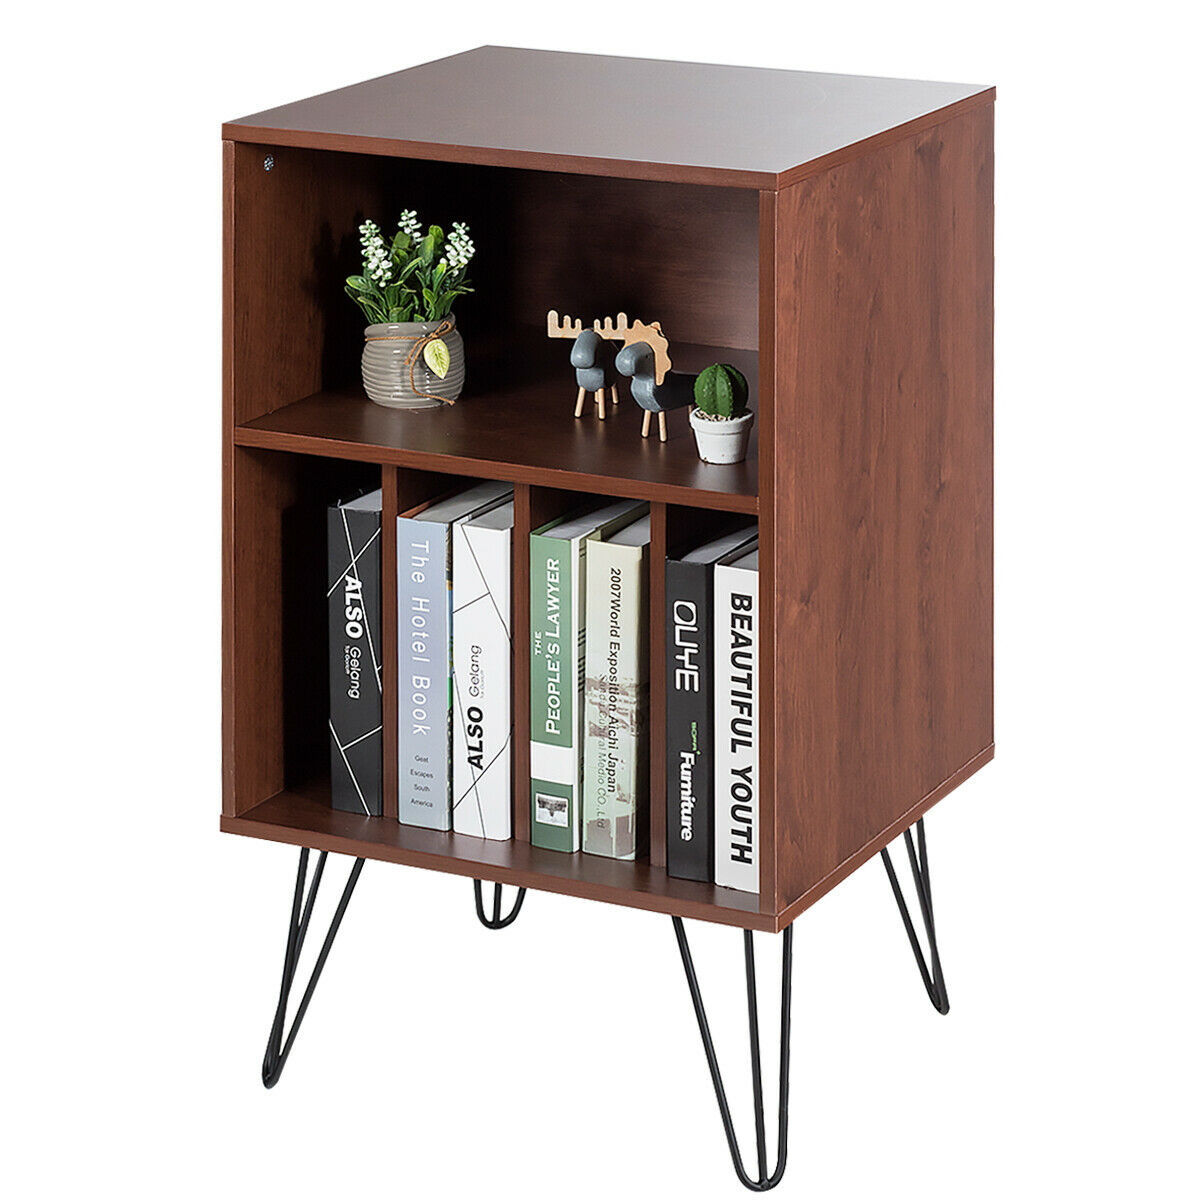 Compact Wooden File Cabinet with Open Storage for Stacking Books Boxes Artworks Tall Standing Display Durable Metal Legs Suitable for Bedroom Living Room Study Home Office Use Space Saving Furniture